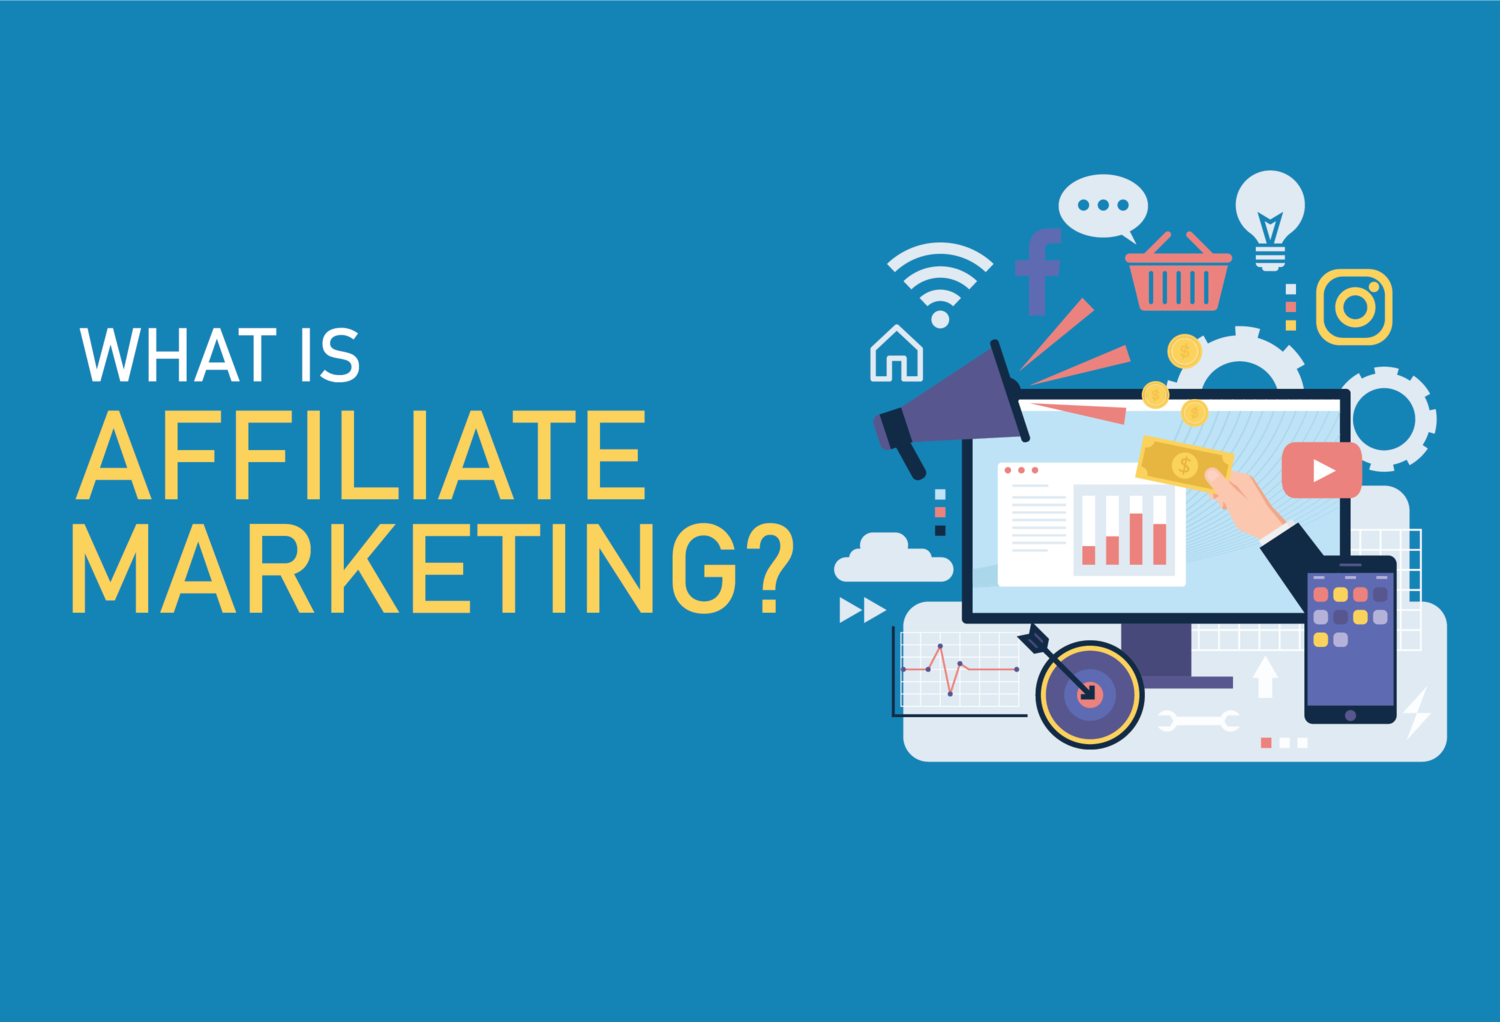 AFFILIATE MARKETING – WHAT IS IT AND WHERE TO START?